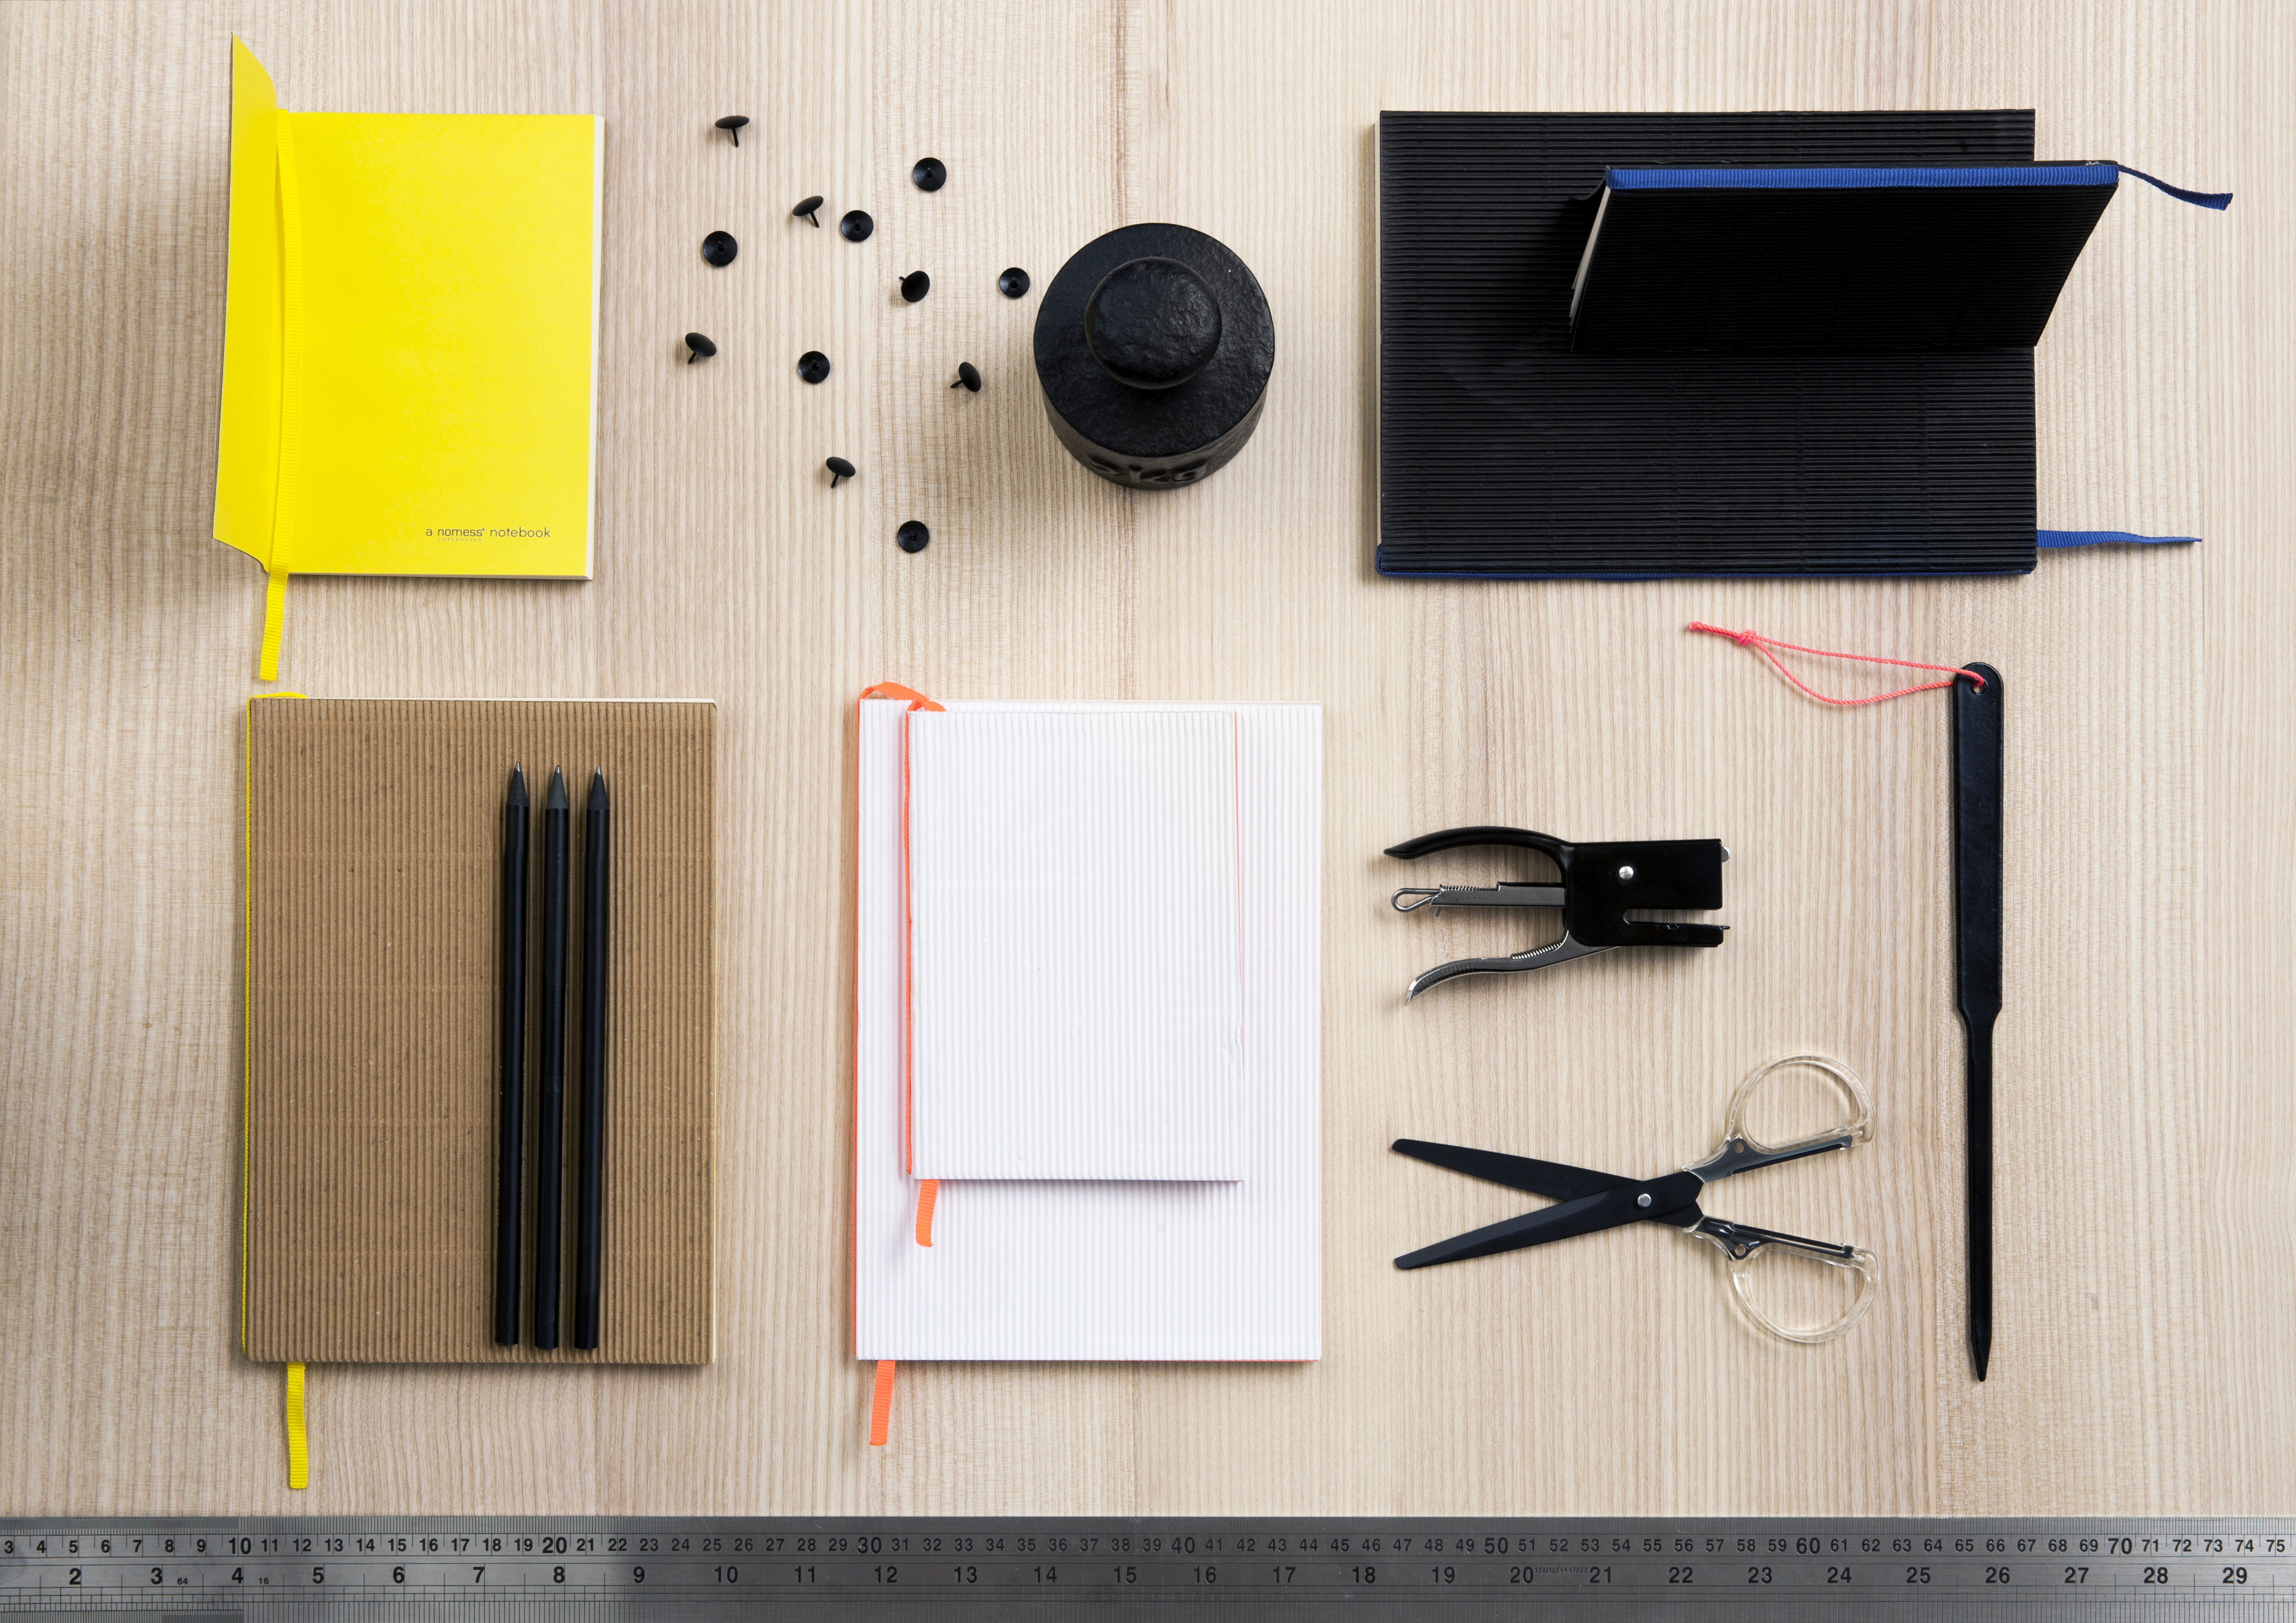 Slim cardboard notebook for the office or commuting